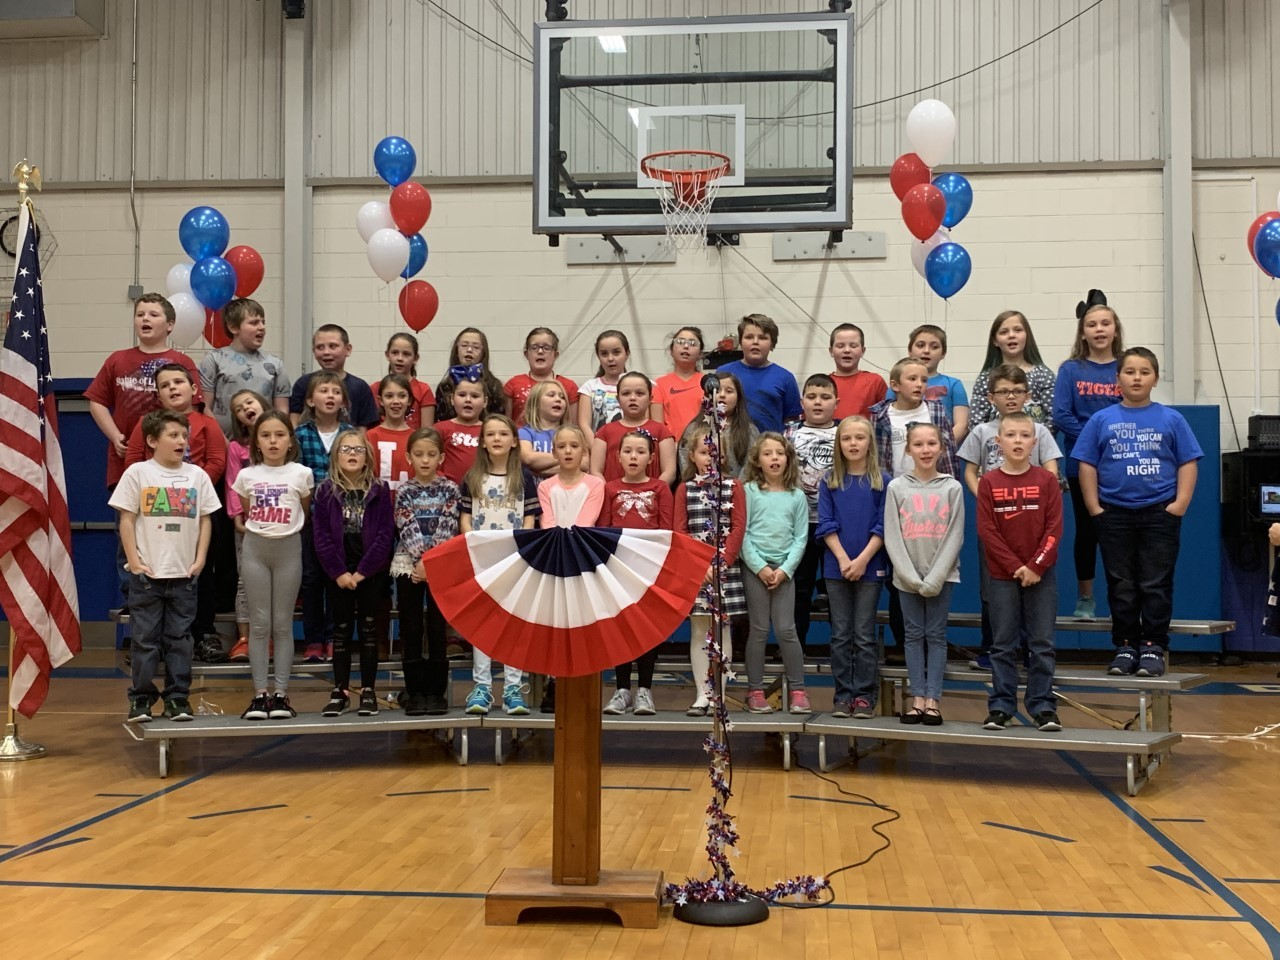 Veteran's Day Program-Students singing on stage